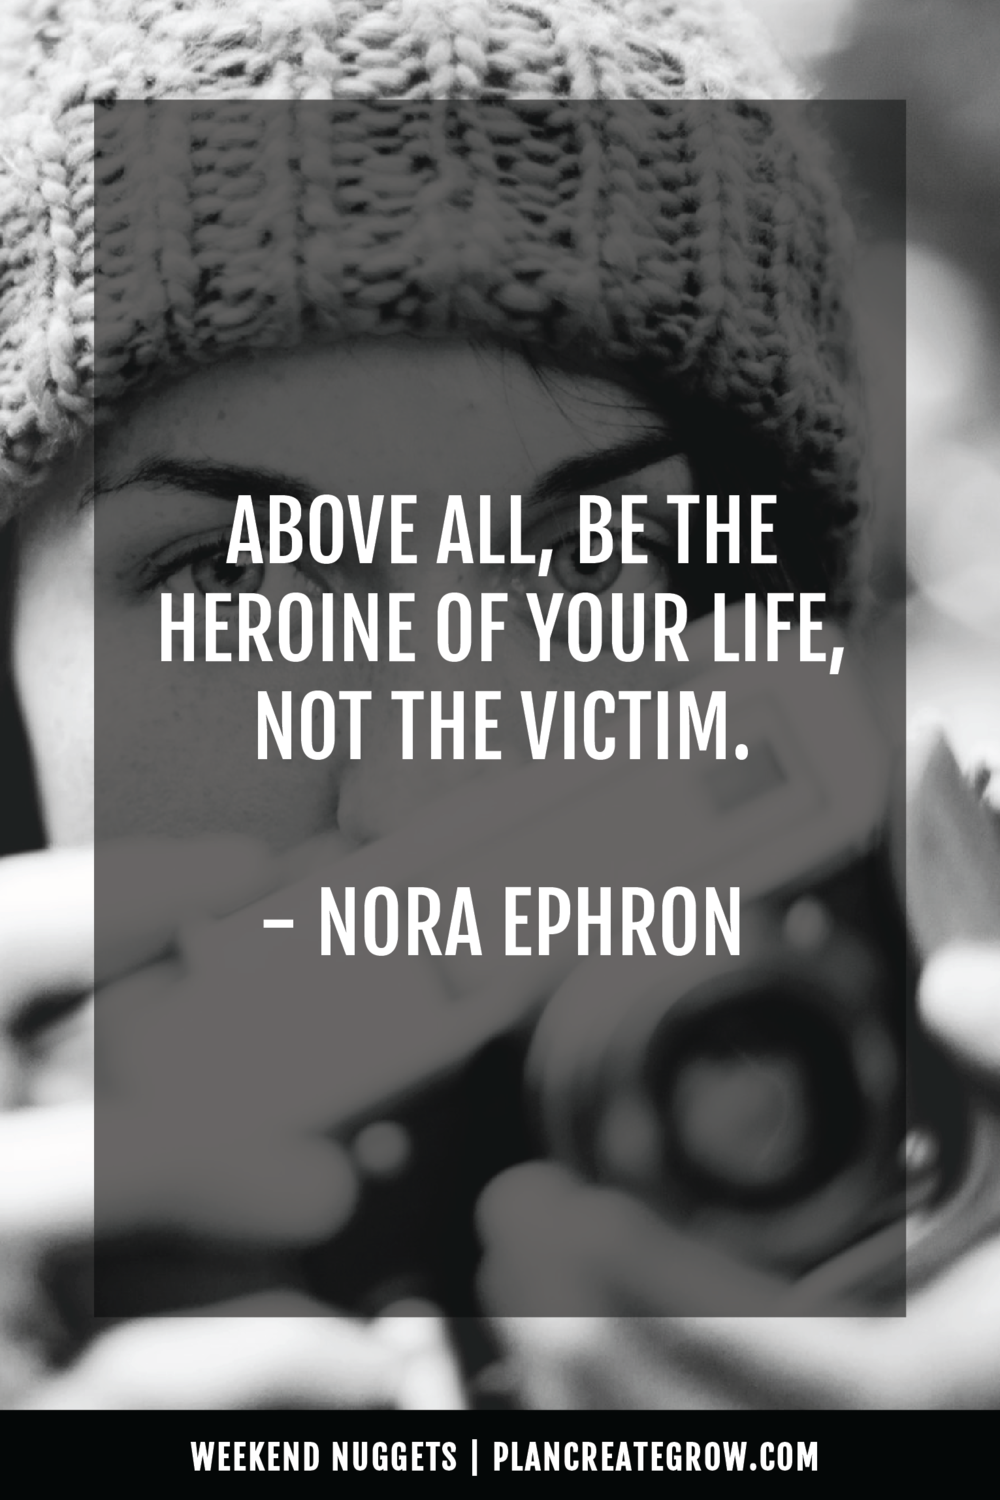 """Above all else, be the heroine of your life, not the victim."" - Nora Ephron  This image forms part of a series called Weekend Nuggets - a collection of quotes and ideas curated to delight and inspire - shared each weekend. For more, visit plancreategrow.com/weekend-nuggets."